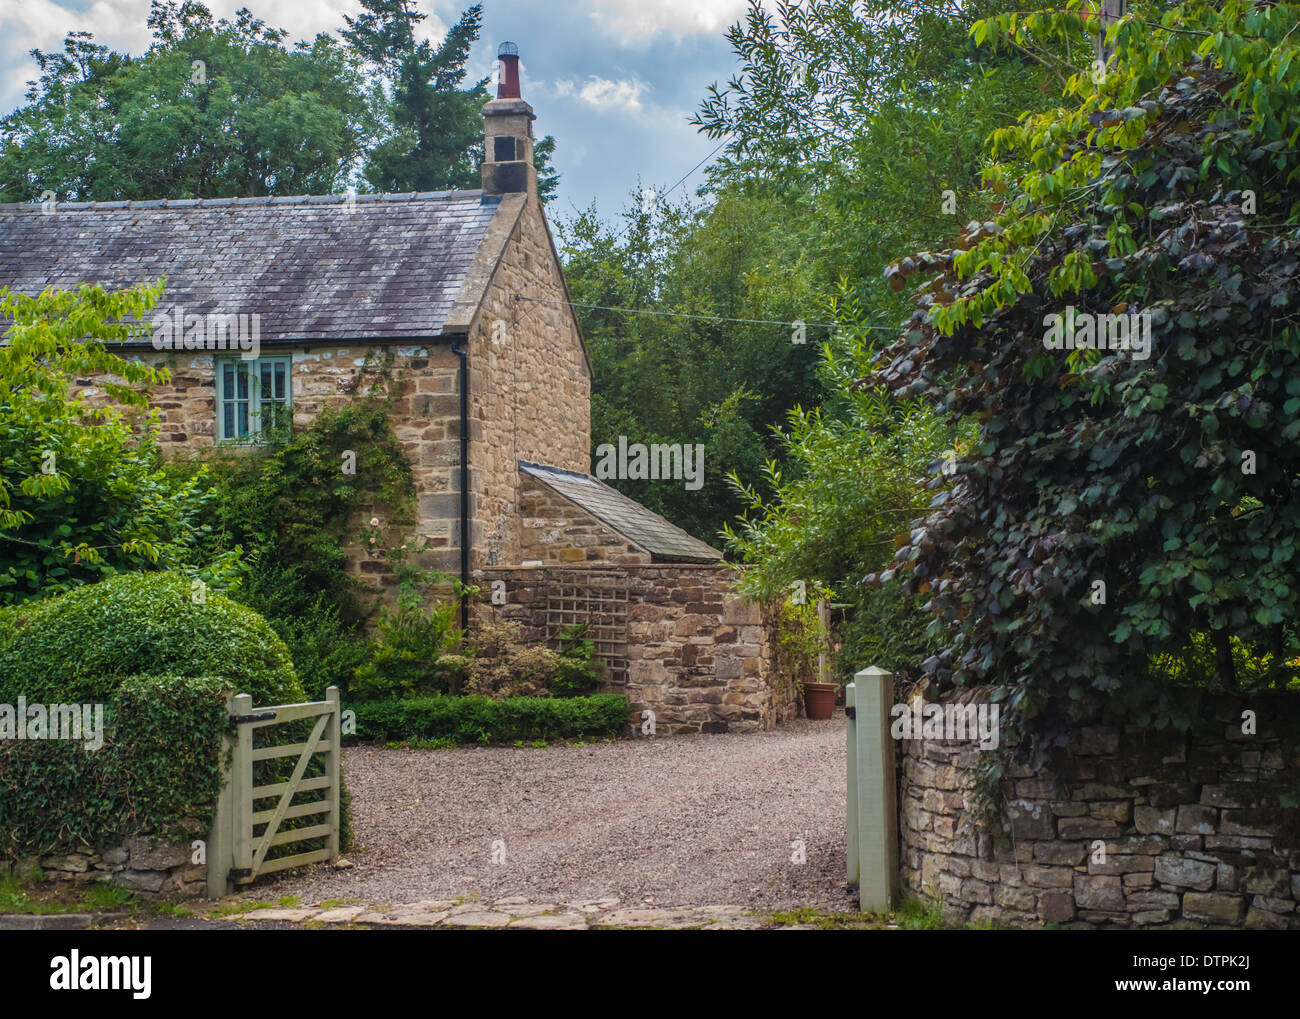 English Country Stone Cottage - Stock Image